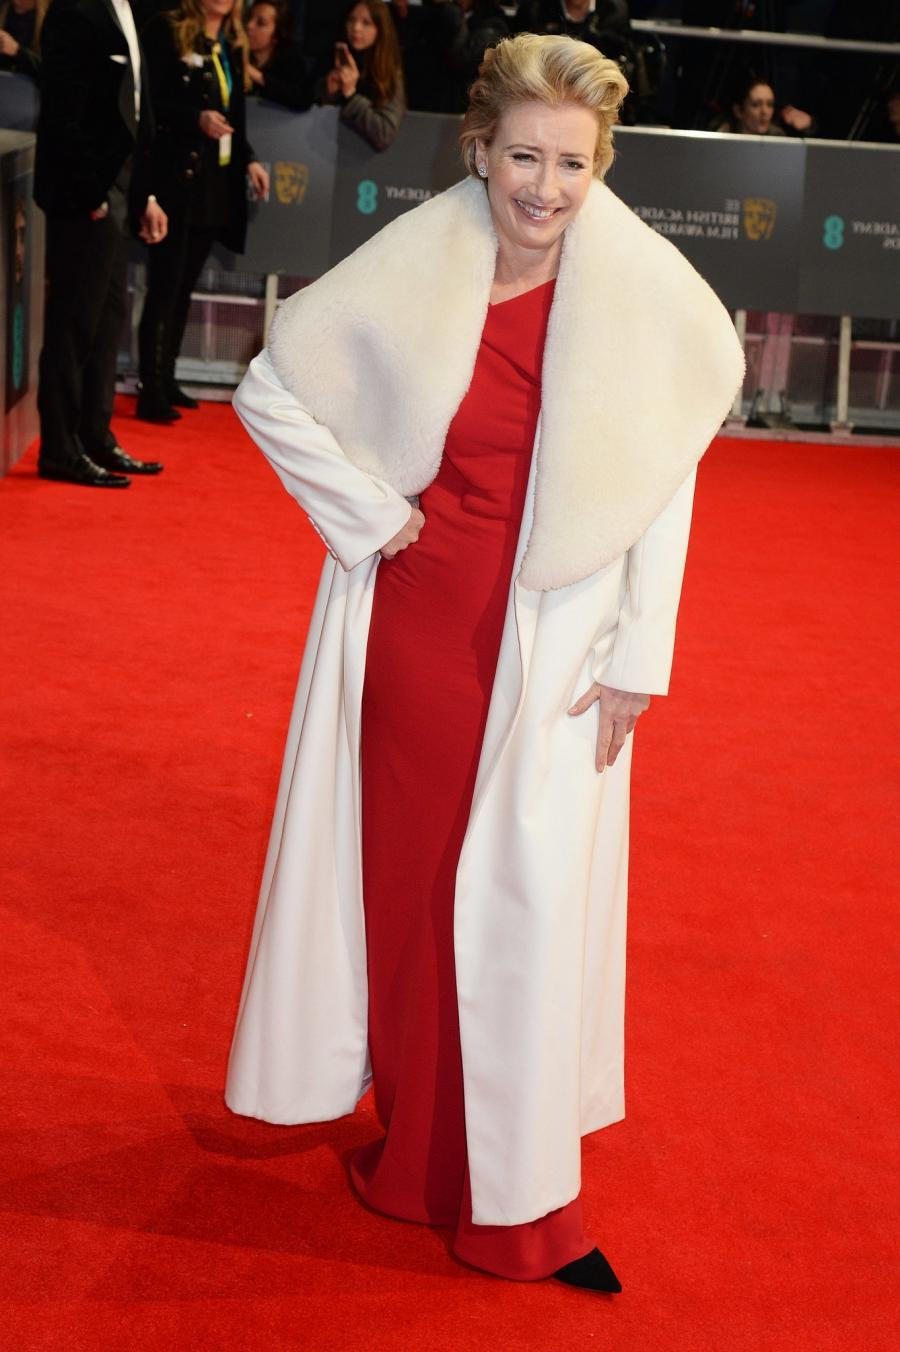 Baftas 2014 red carpet photos BAFTA Awards 2014: Red Carpet Arrivals Celebuzz